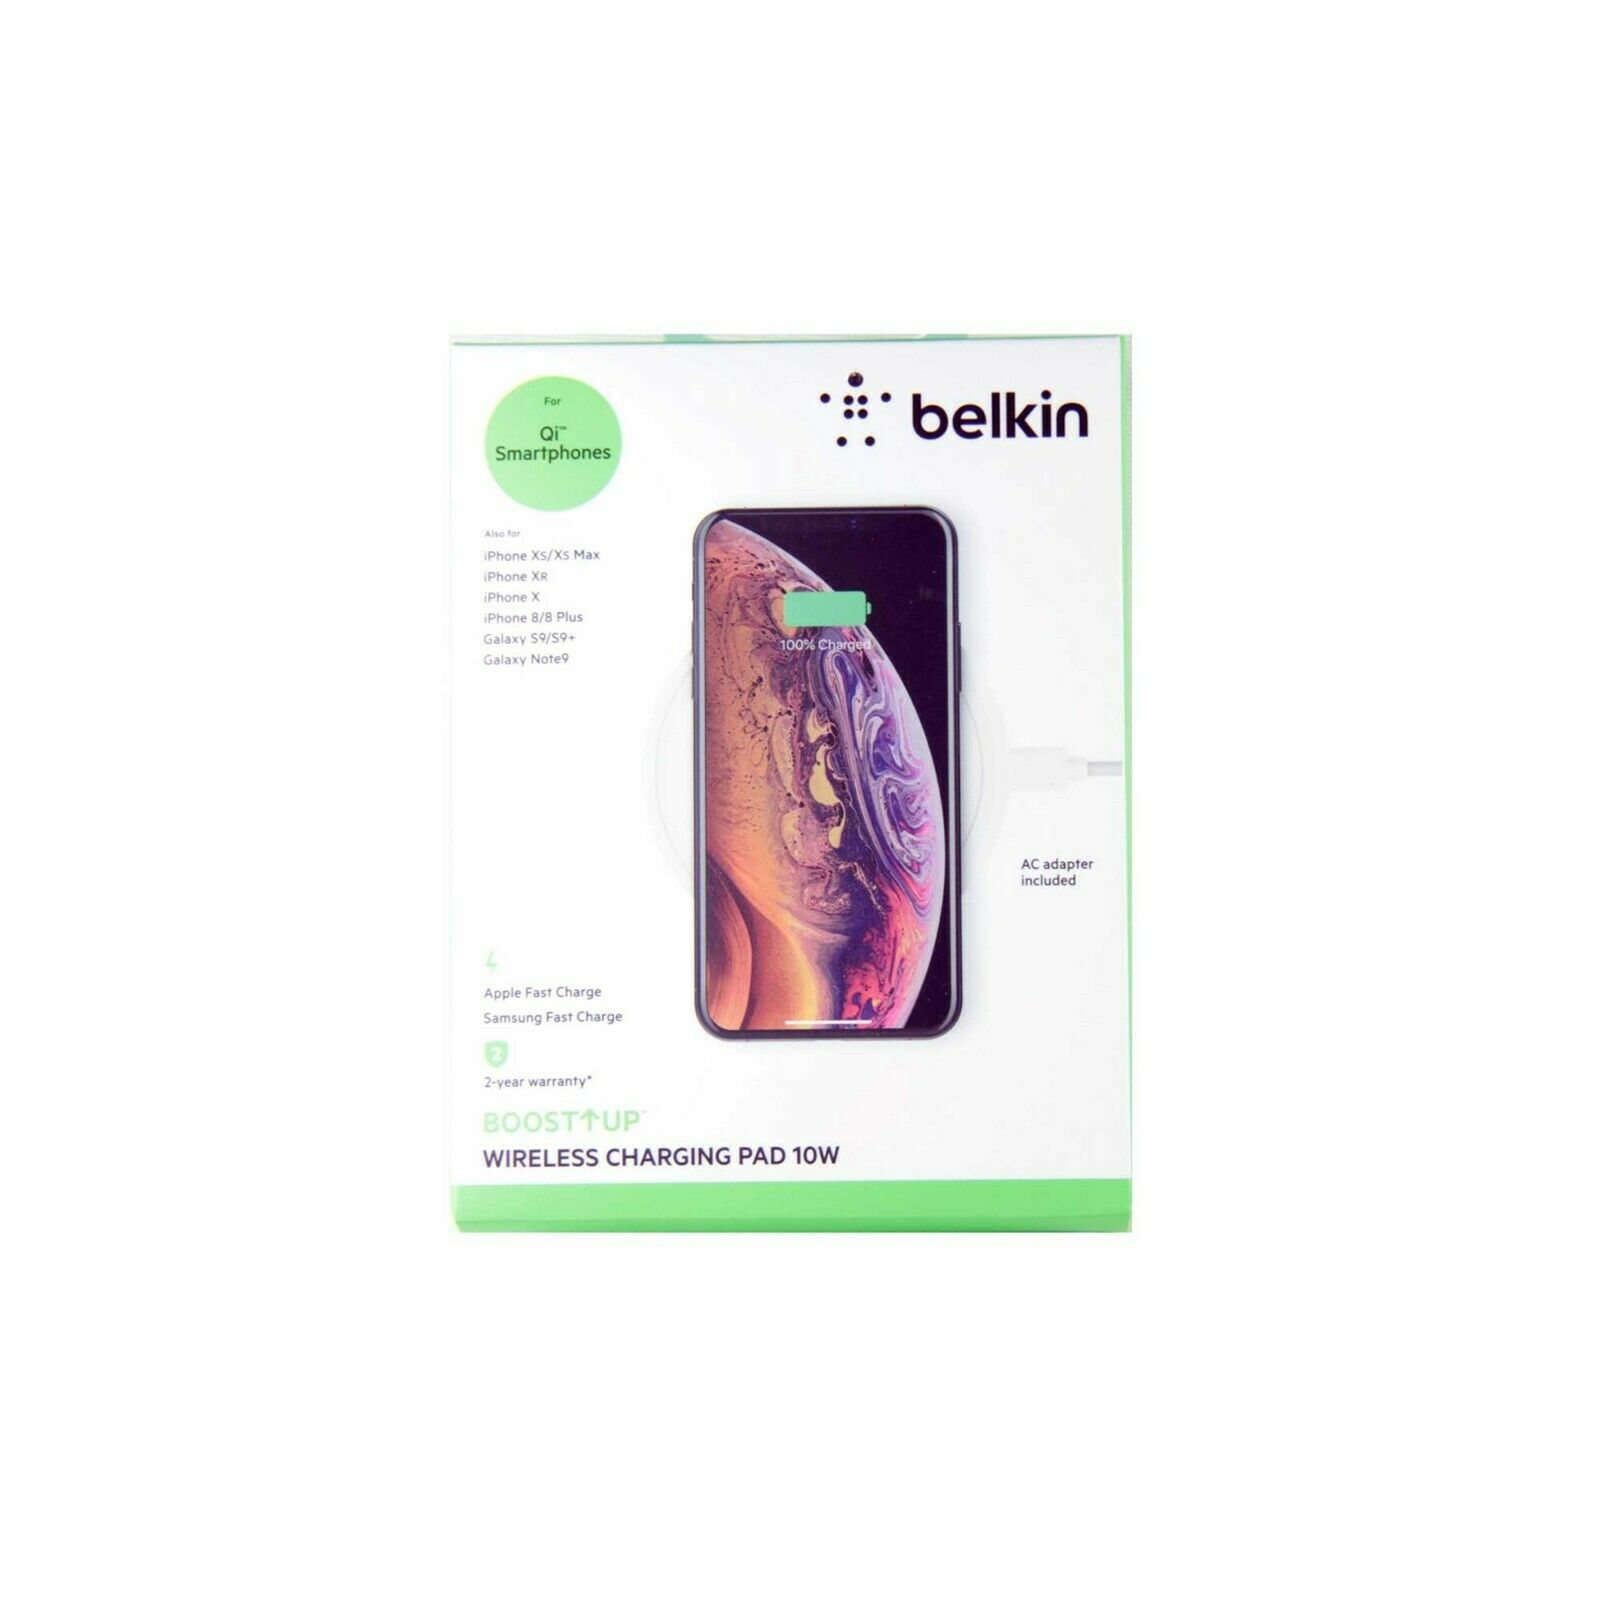 BELKIN CHARGE PAD QI WIRELESS BOOST UP 10W FOR IPHONE 11 PRO